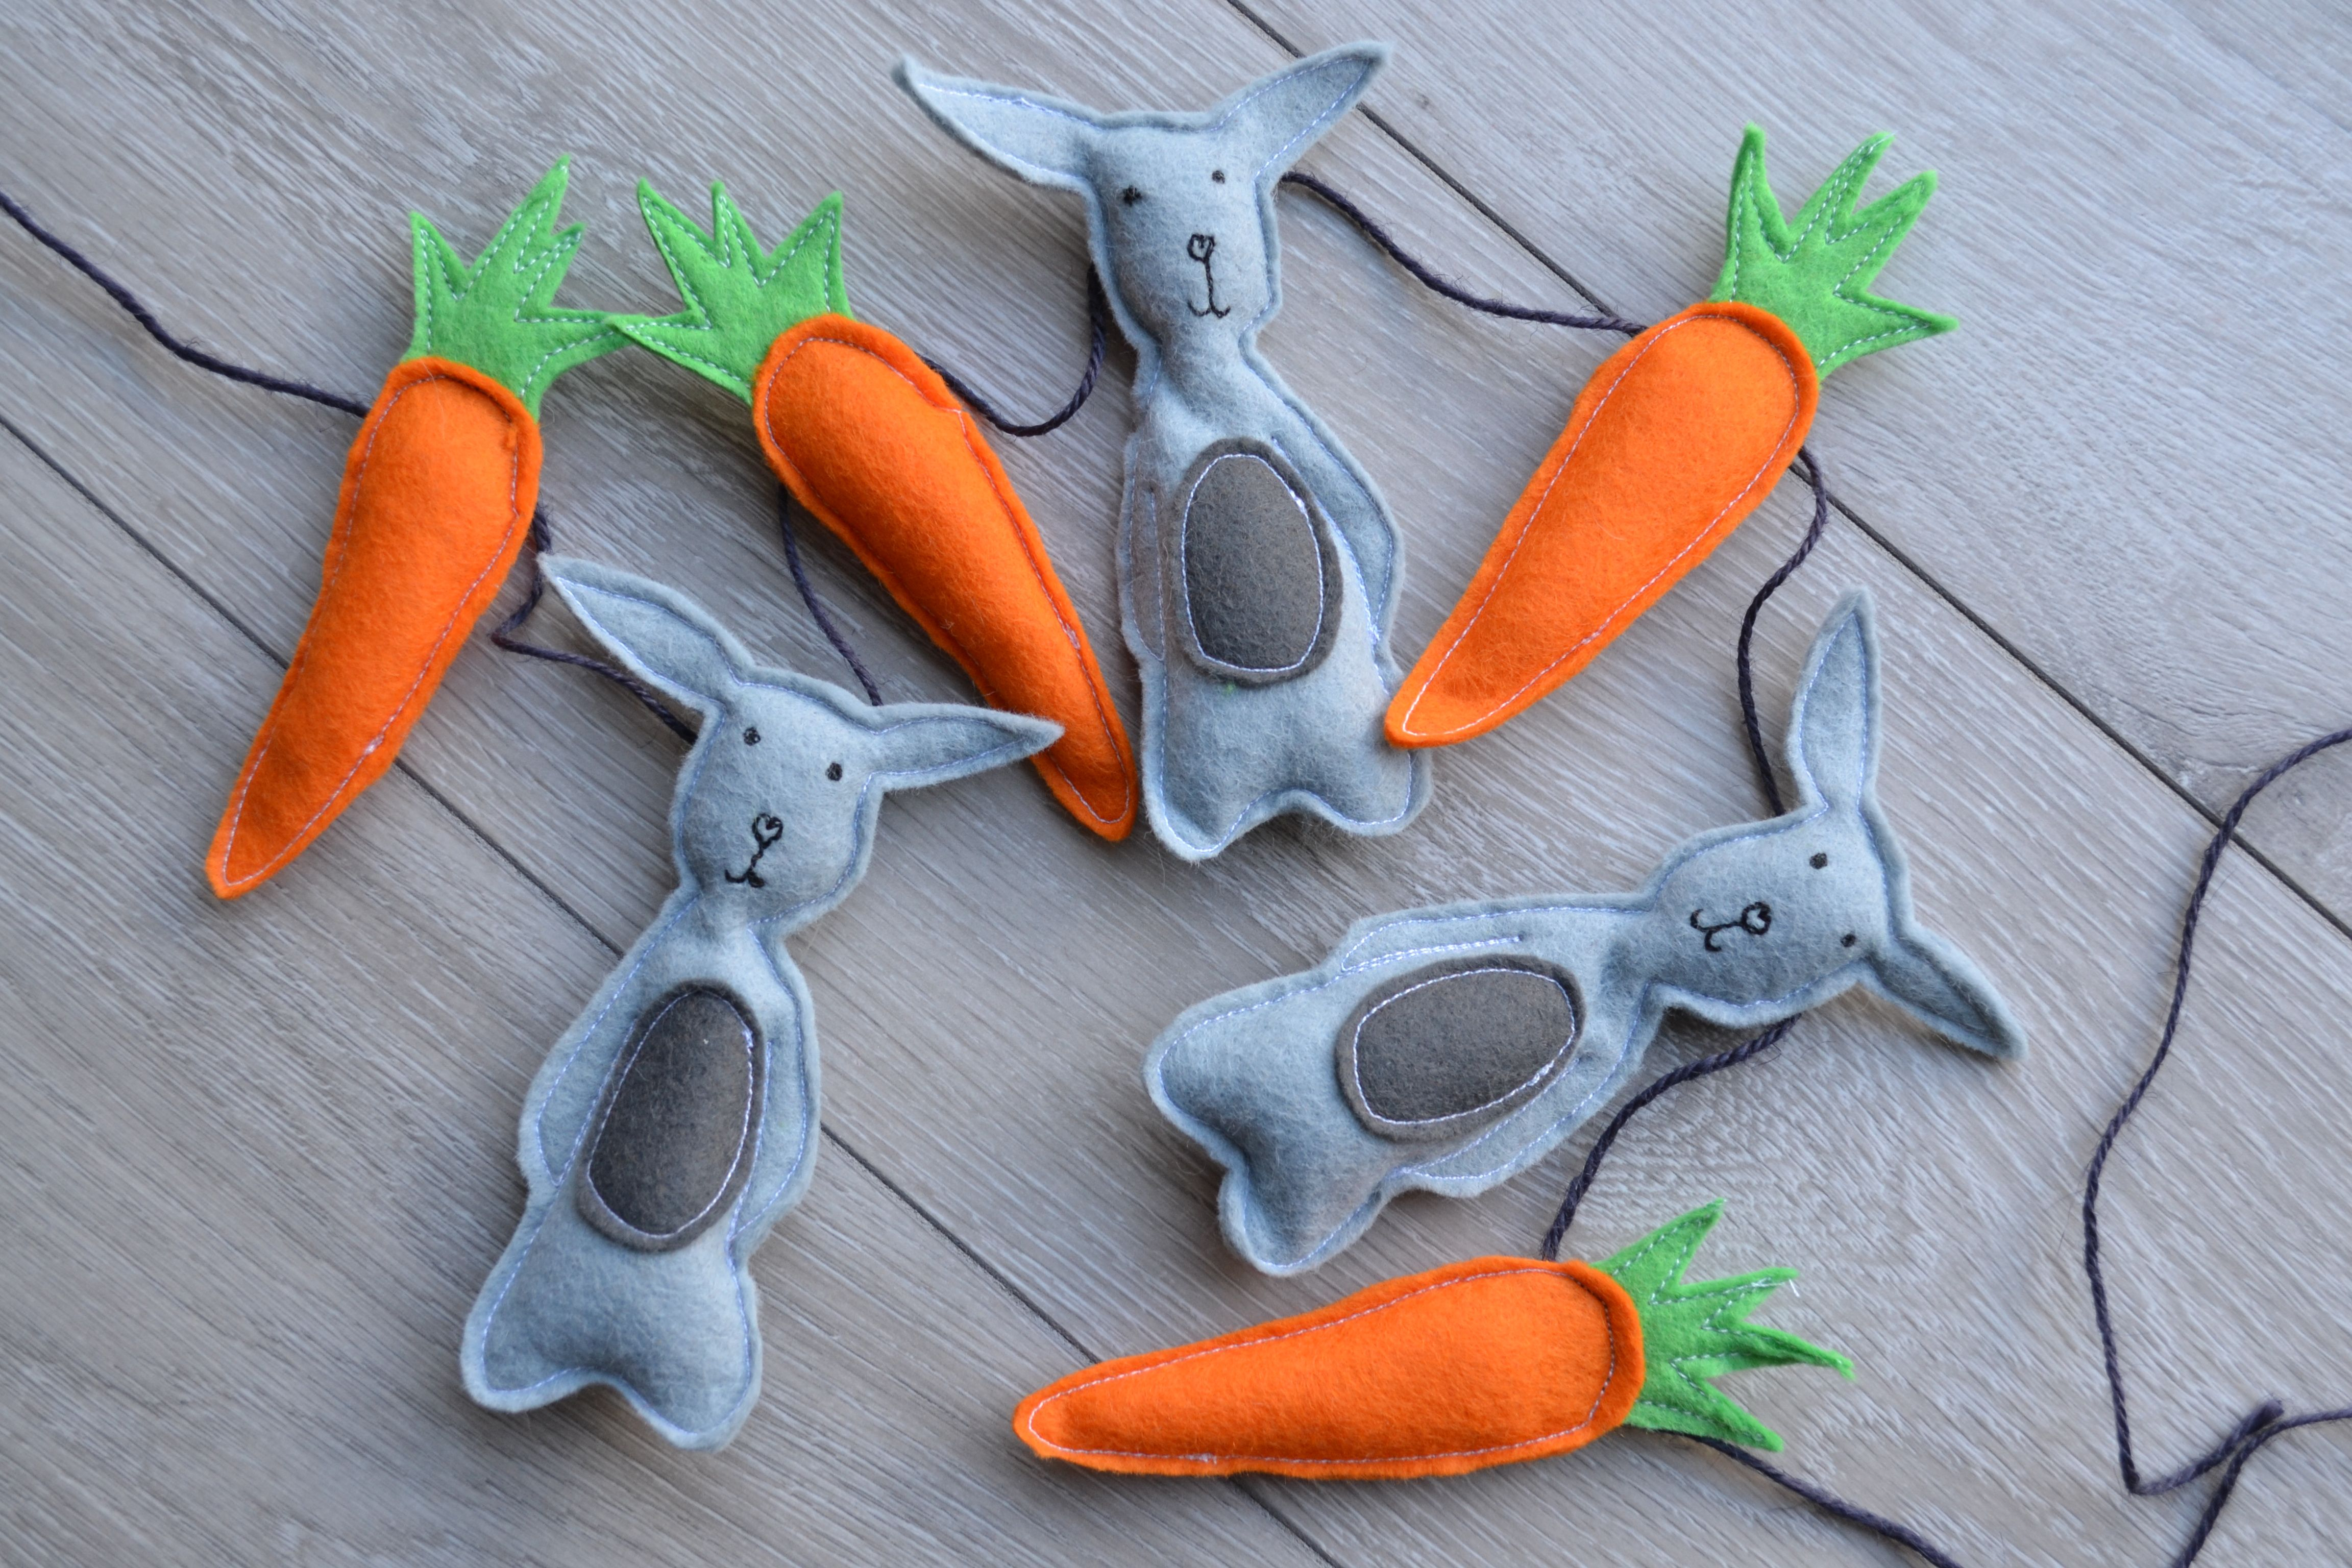 Easter felt bunting rabbits with carrots creative home ideas buy handmade gifts and personalised accessories directly from uk makers and designers negle Choice Image